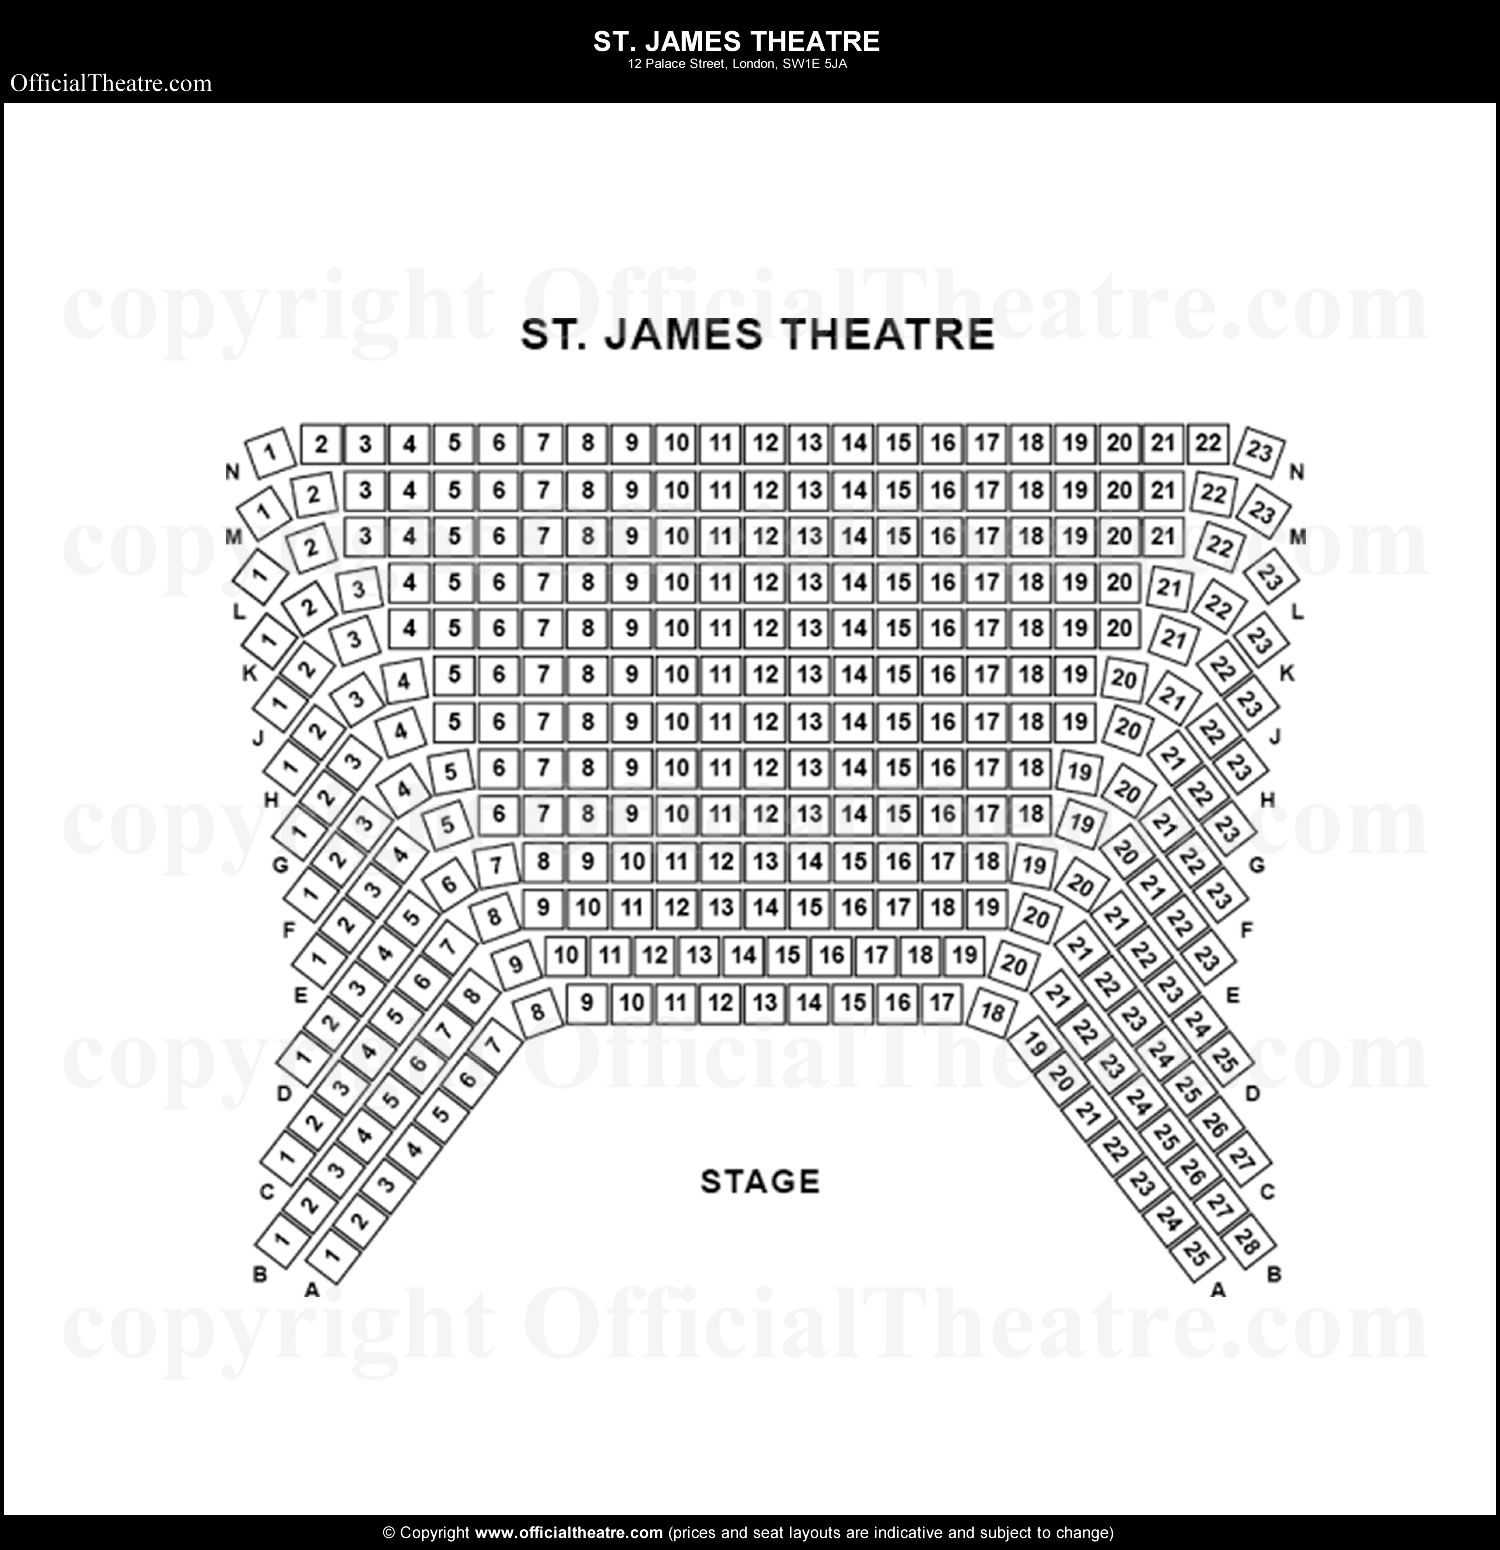 St James Theatre Seating Prices